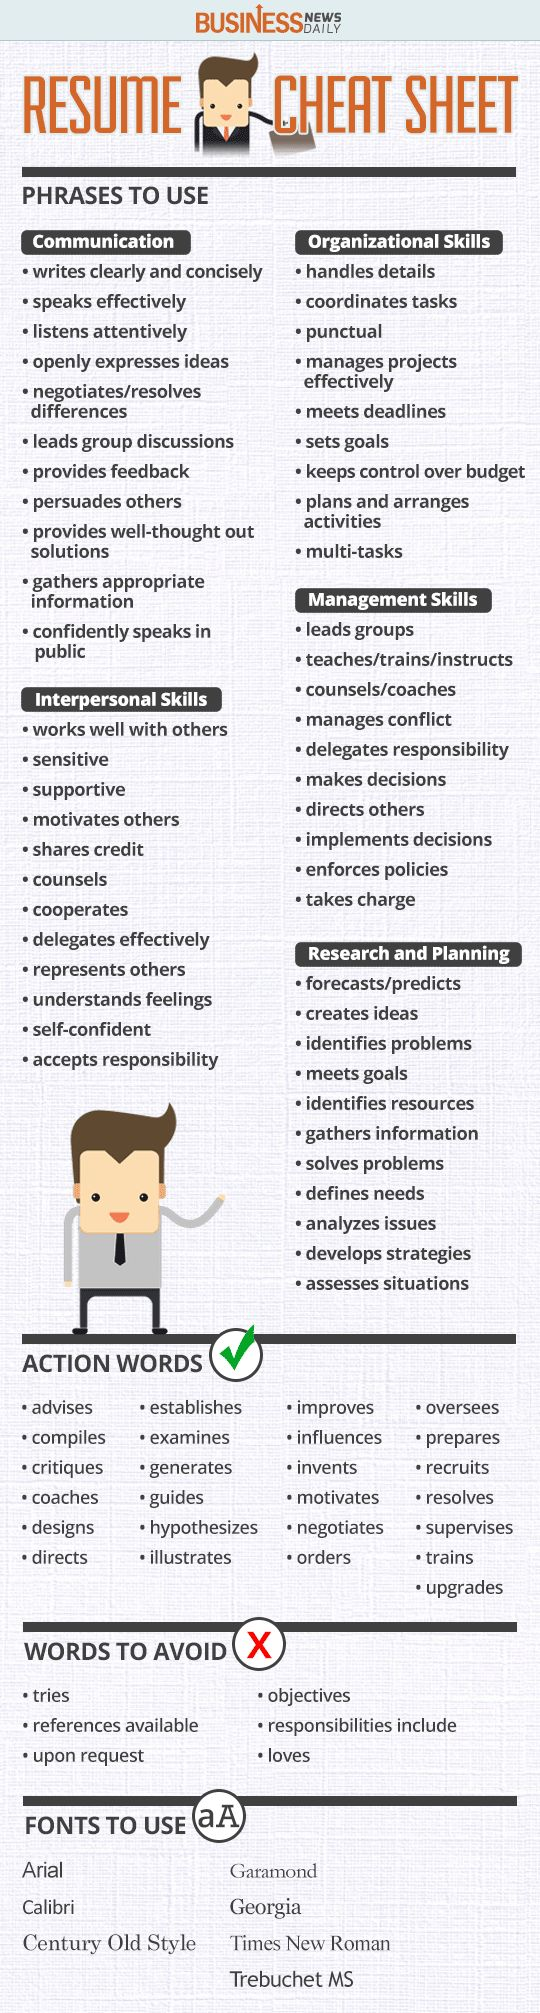 Opposenewapstandardsus  Ravishing  Ideas About Resume On Pinterest  Cv Format Resume Cv And  With Great Resume Cheat Sheet Infographic Andrews Almost Done With A Complete Unit On Employment Which With Awesome Creating A Great Resume Also Sales Account Manager Resume In Addition Email Marketing Resume And High School Resume Skills As Well As Analytics Resume Additionally Examples Of Summary On Resume From Pinterestcom With Opposenewapstandardsus  Great  Ideas About Resume On Pinterest  Cv Format Resume Cv And  With Awesome Resume Cheat Sheet Infographic Andrews Almost Done With A Complete Unit On Employment Which And Ravishing Creating A Great Resume Also Sales Account Manager Resume In Addition Email Marketing Resume From Pinterestcom